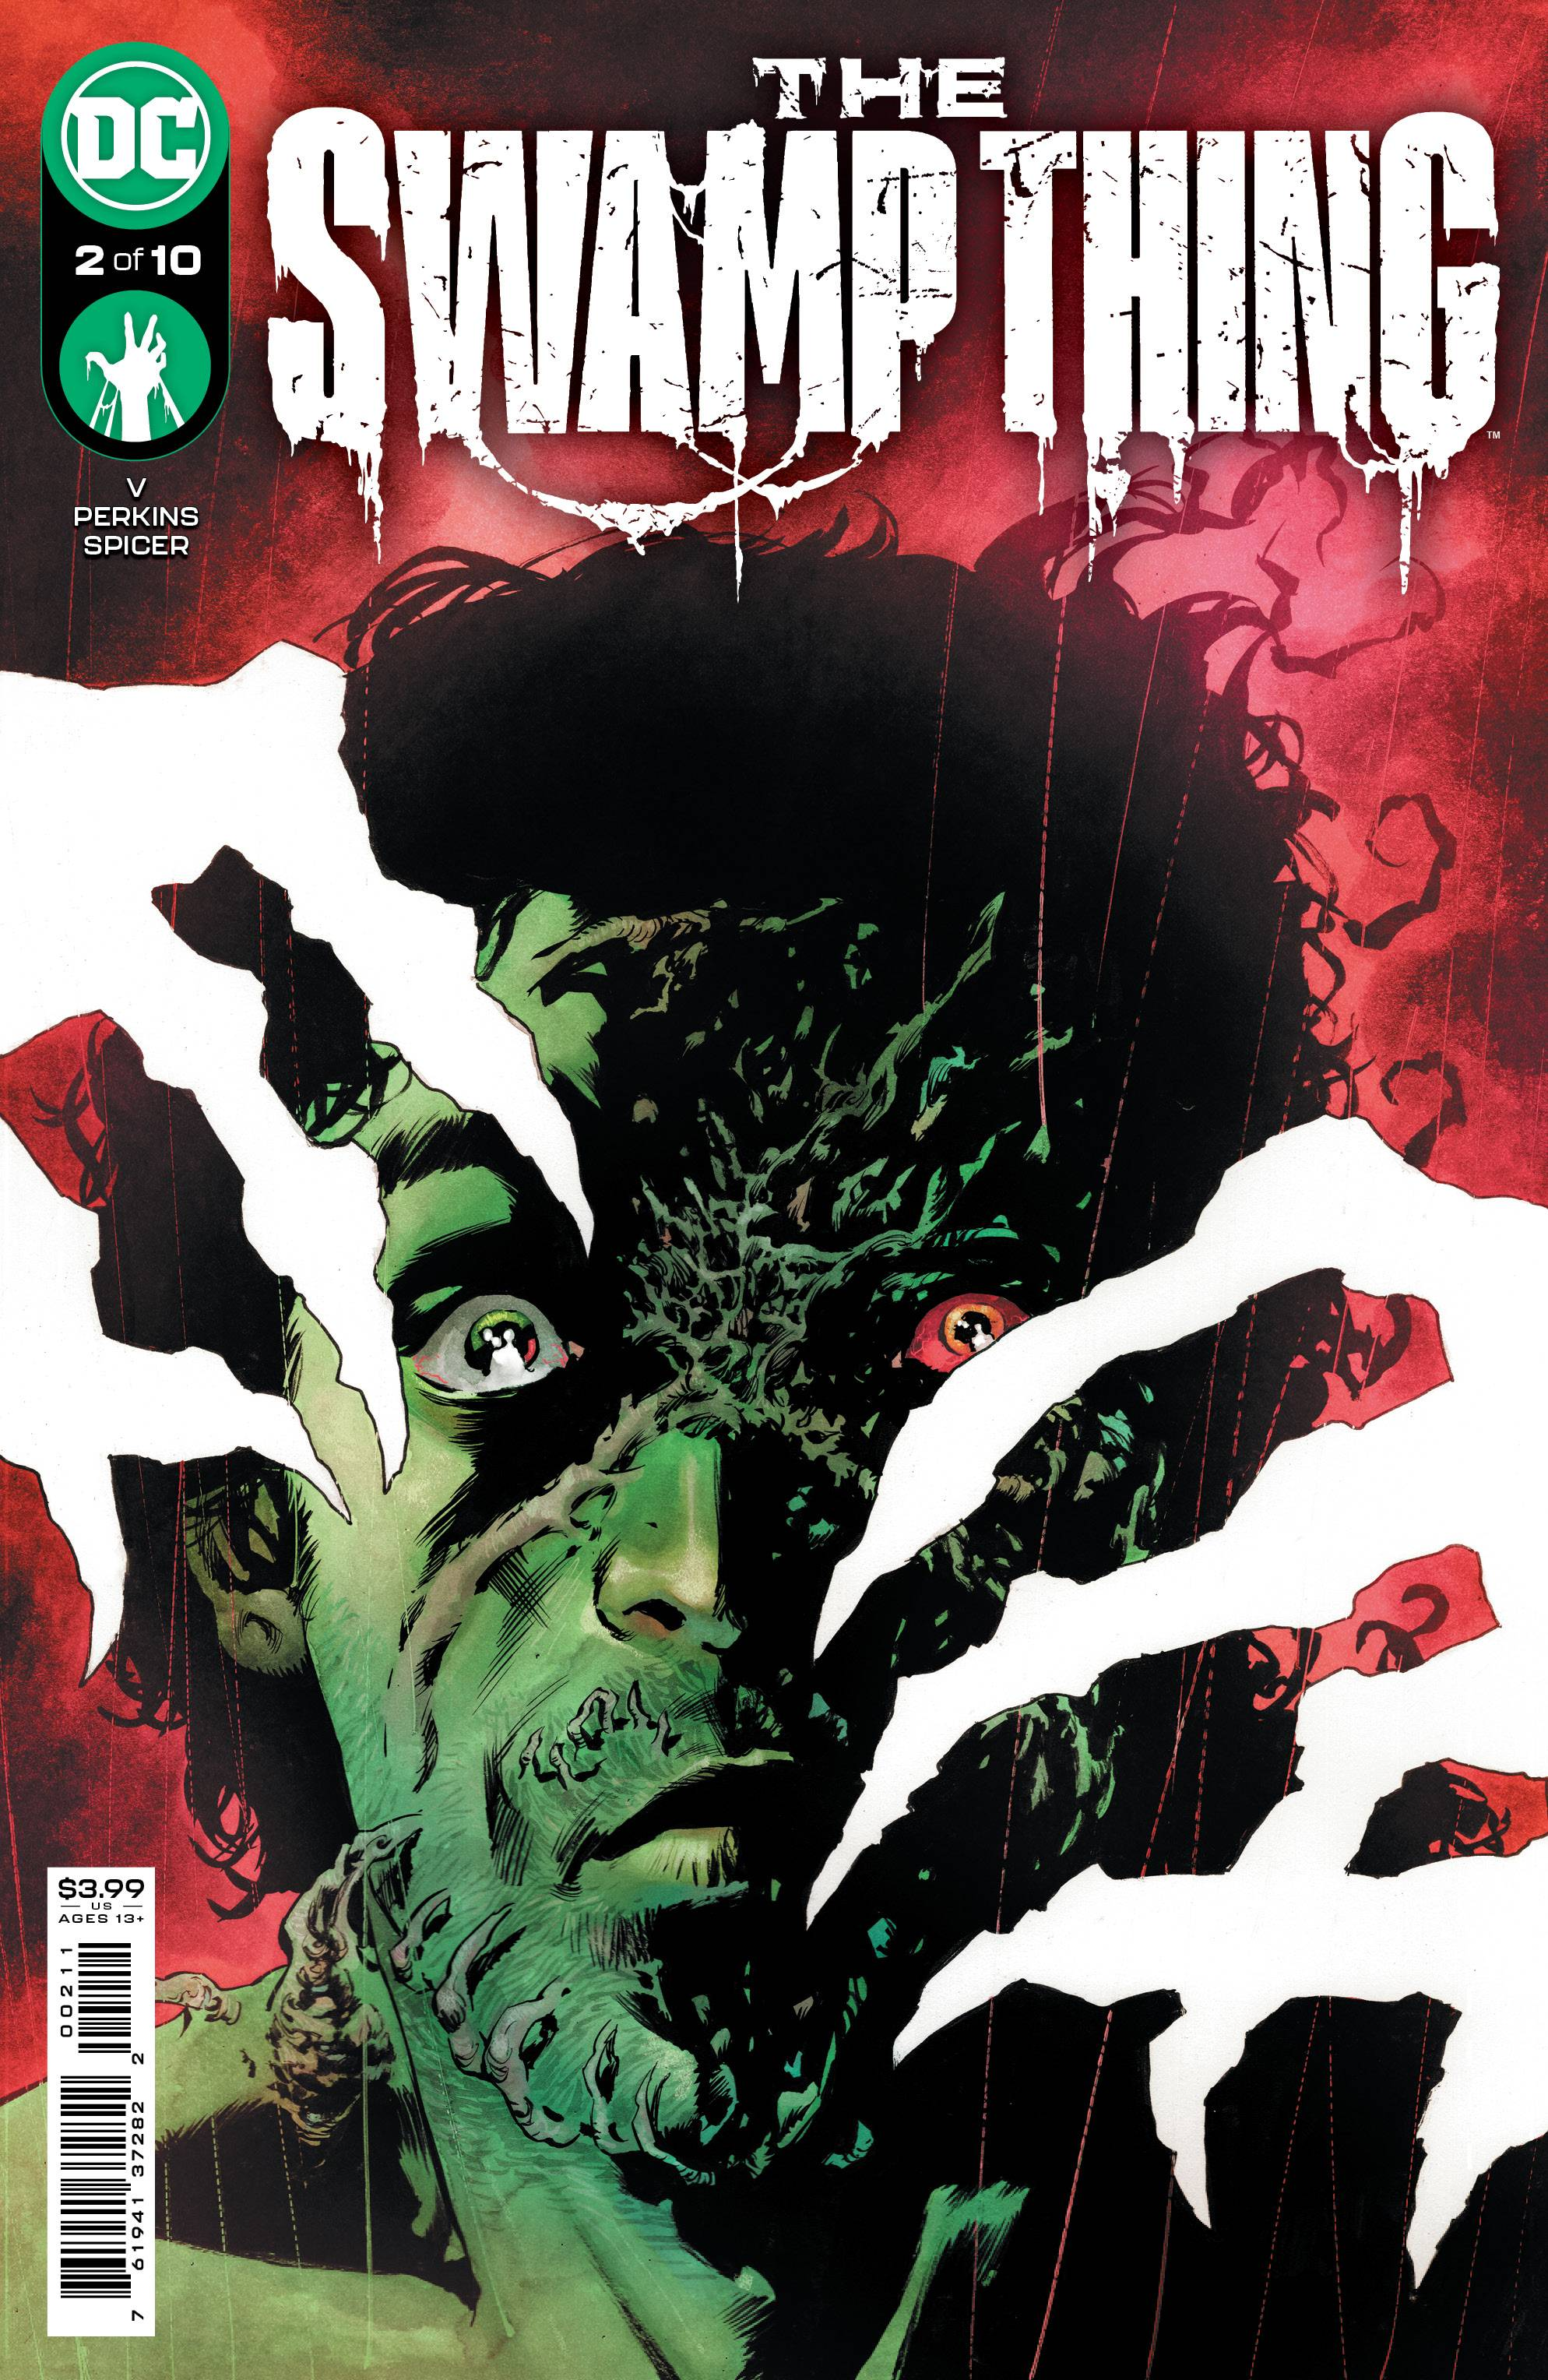 SWAMP THING #2 CVR A PERKINS